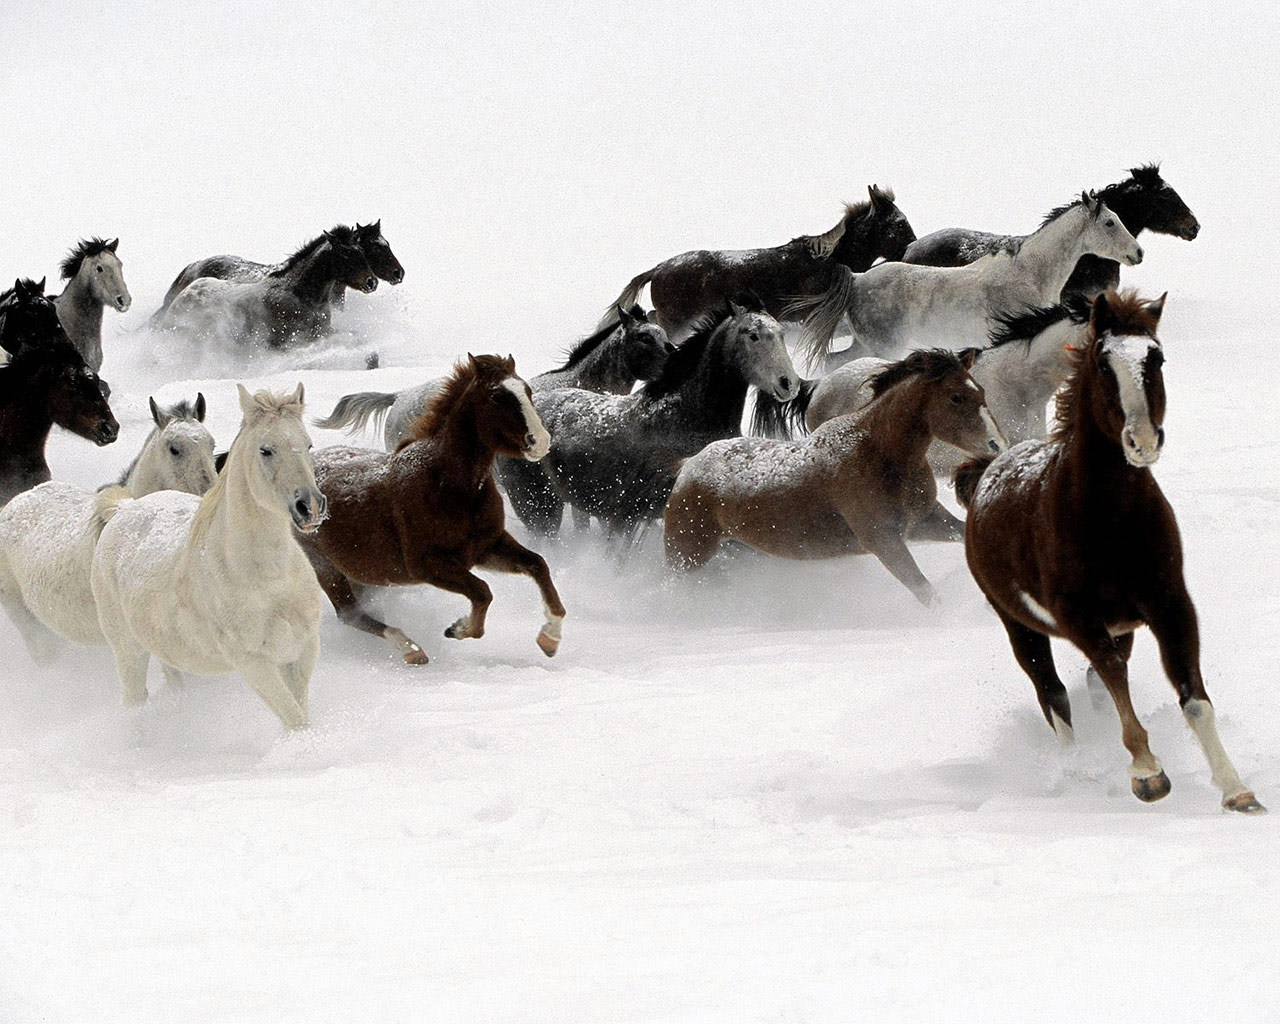 1280 Galloping Horse National Geographic Wallpaper - 1280_Galloping_Horse_National_Geographic_Wallpaper